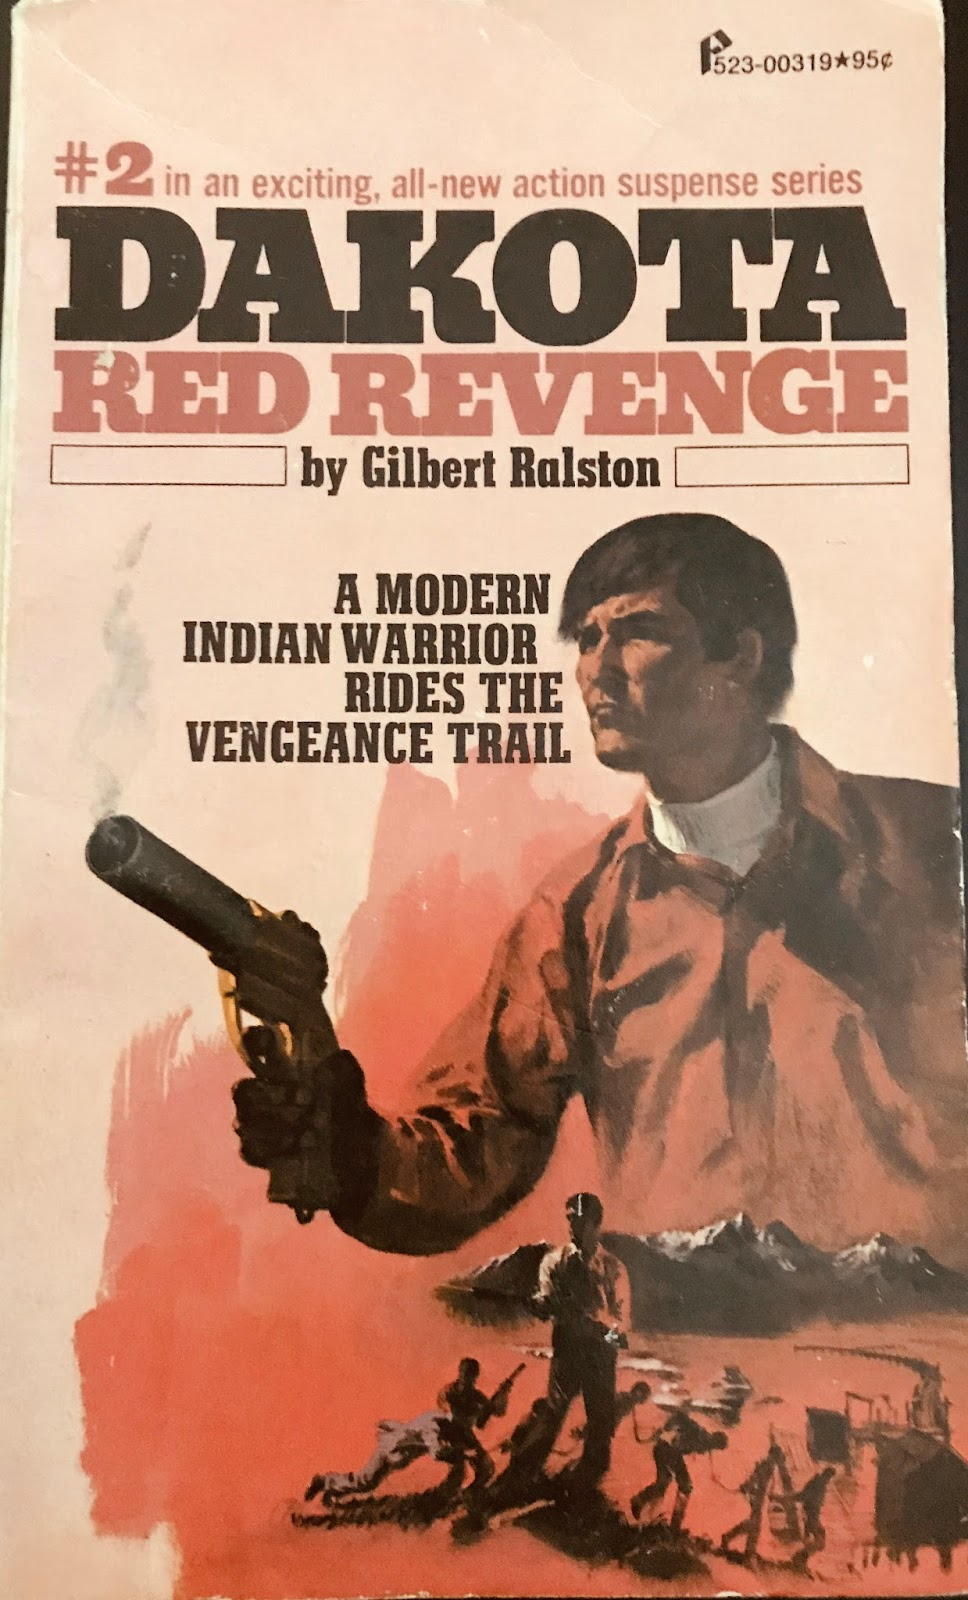 Paperback warrior march 2018 red revenge is another top notch effort from author gilbert ralston it was released in 1974 through the popular pinnacle adventure line and marks the fandeluxe Choice Image